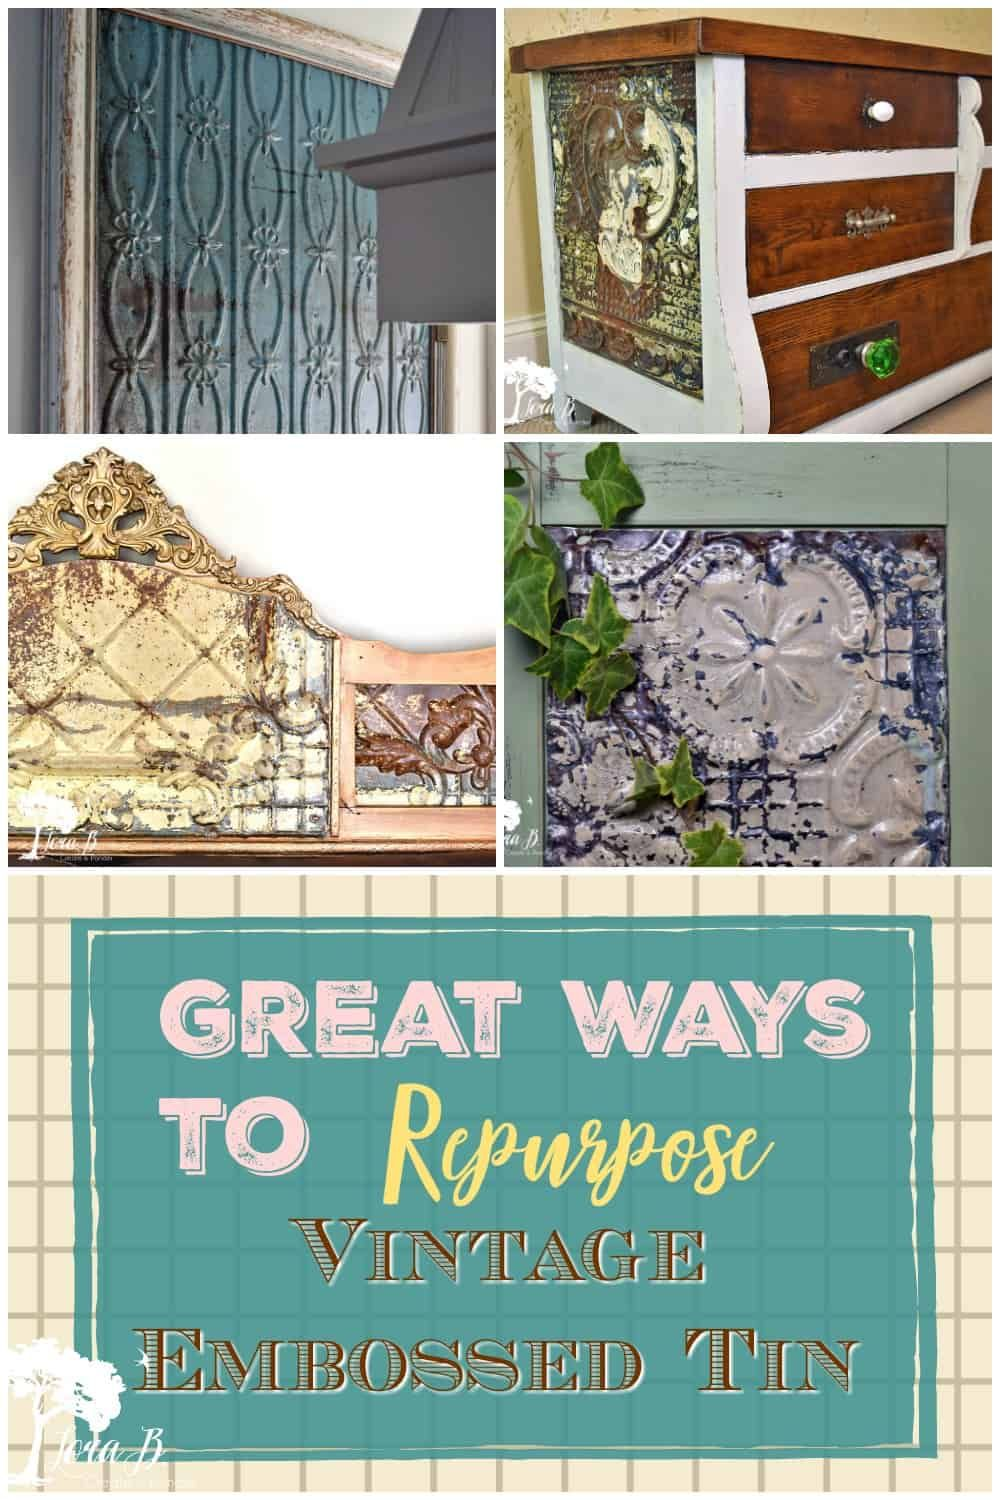 Get great ideas for repurposing and upcycling vintage embossed ceiling tin. It's old patina and character will add beauty to many kinds of DIY projects. #repurposing #vintagetin #embossedtin #frameideas #upcycled #upcyledvintage #repurposedvintage